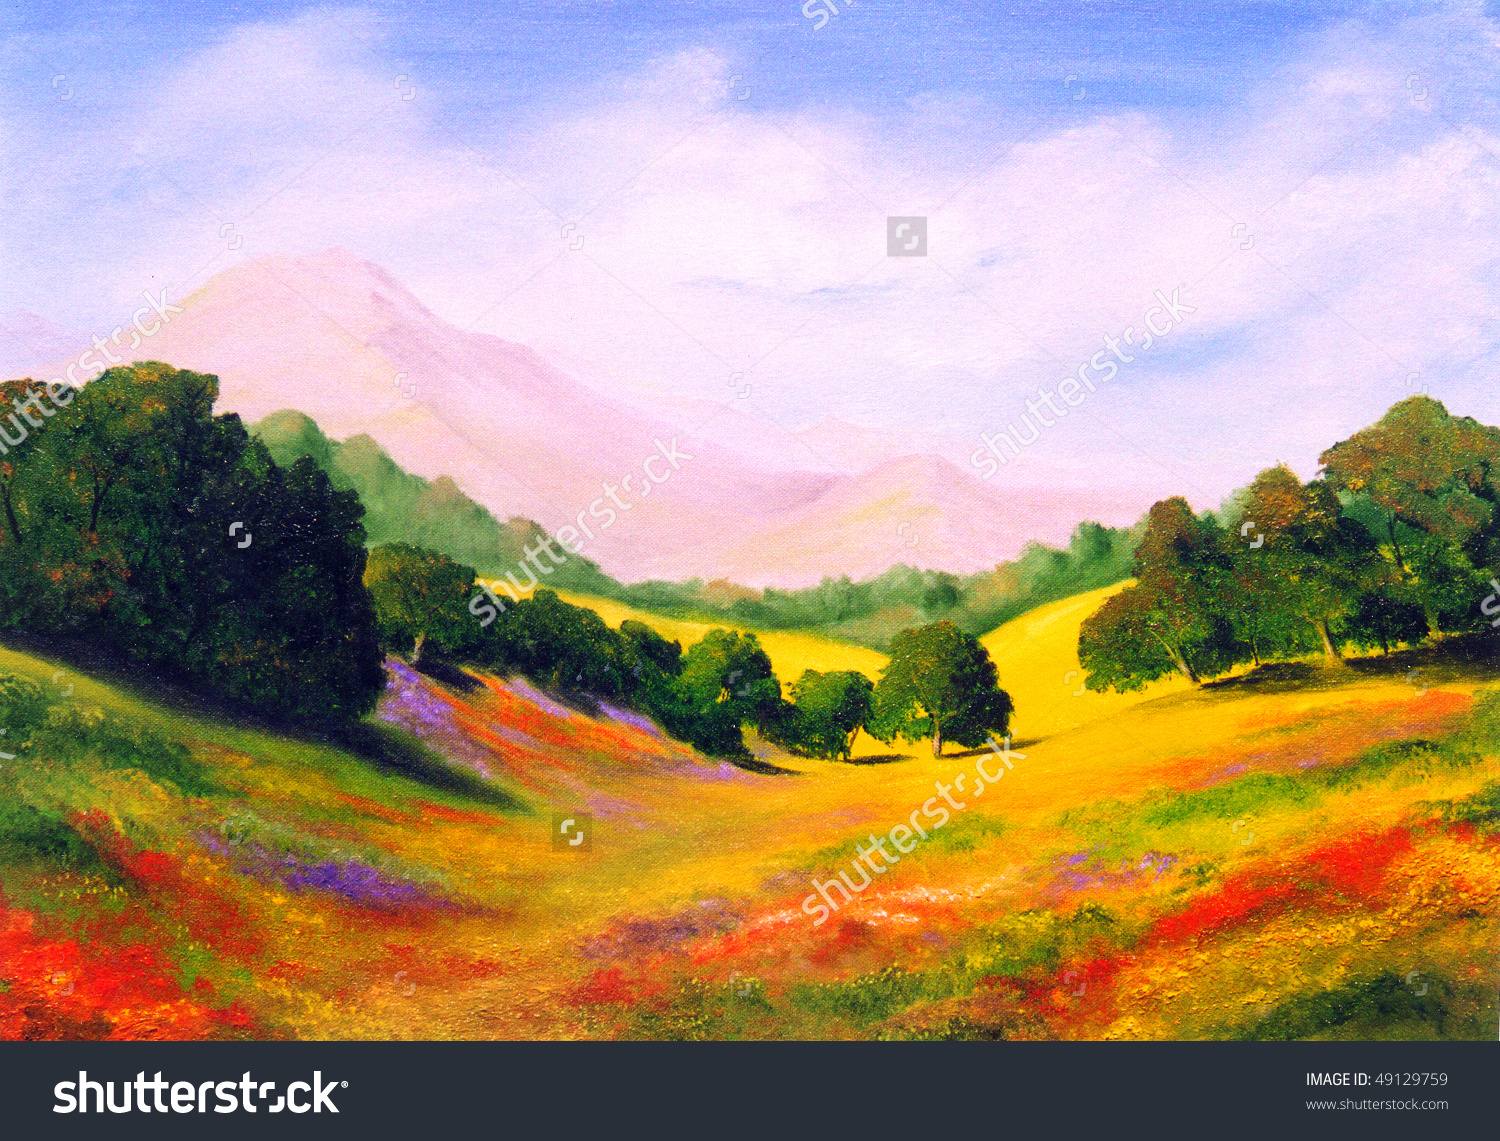 Beautiful Original Oil Painting Landscape On Stock Photo 49129759.